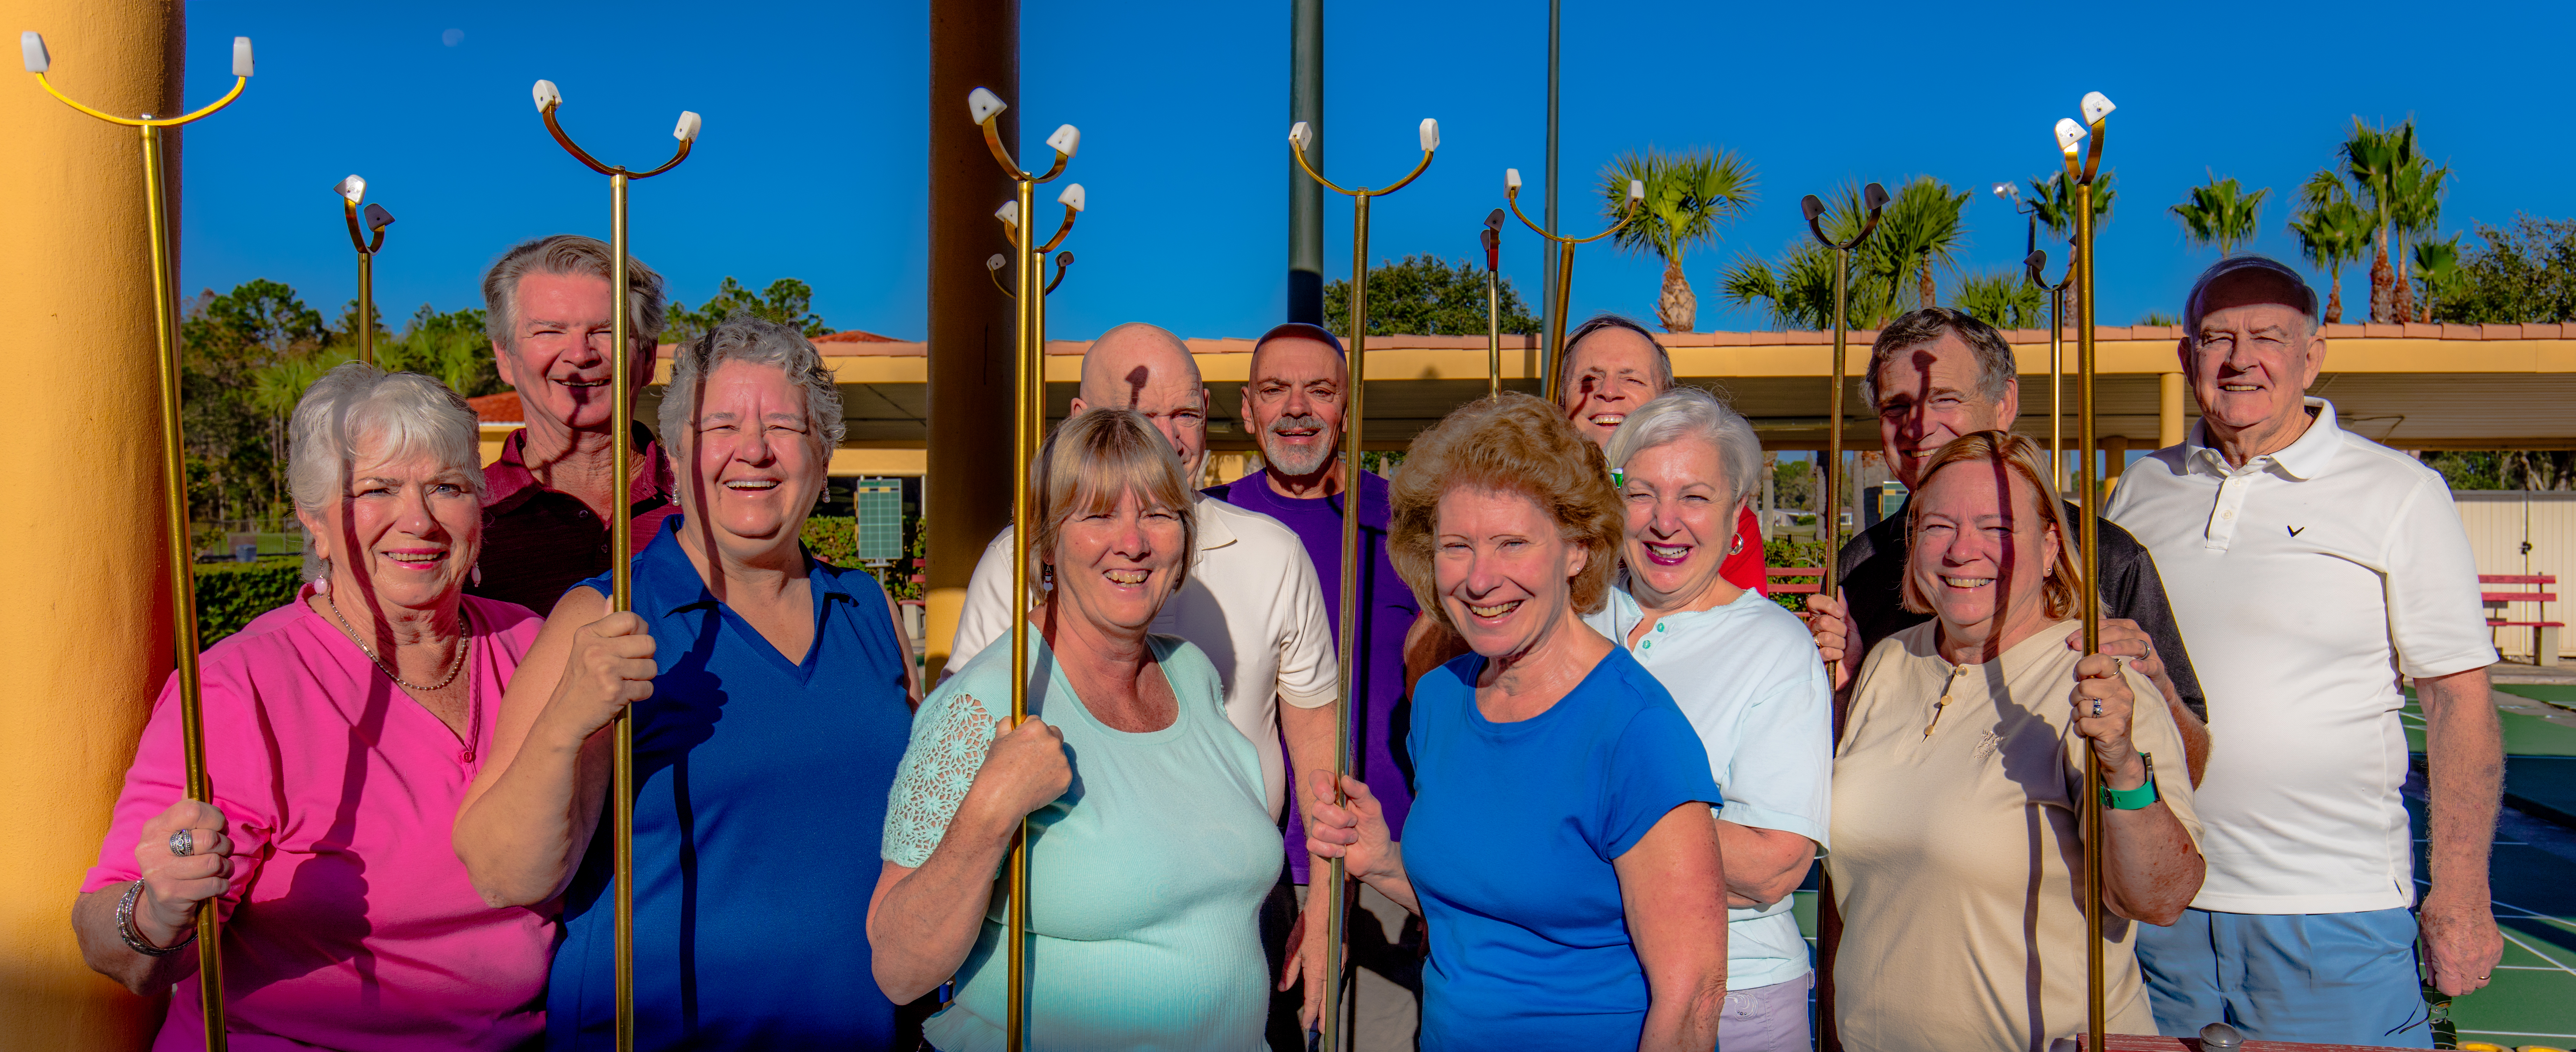 Group of 12 smiling senior men and women in casual dress holding shuffleboard sticks in front of shuffleboard court